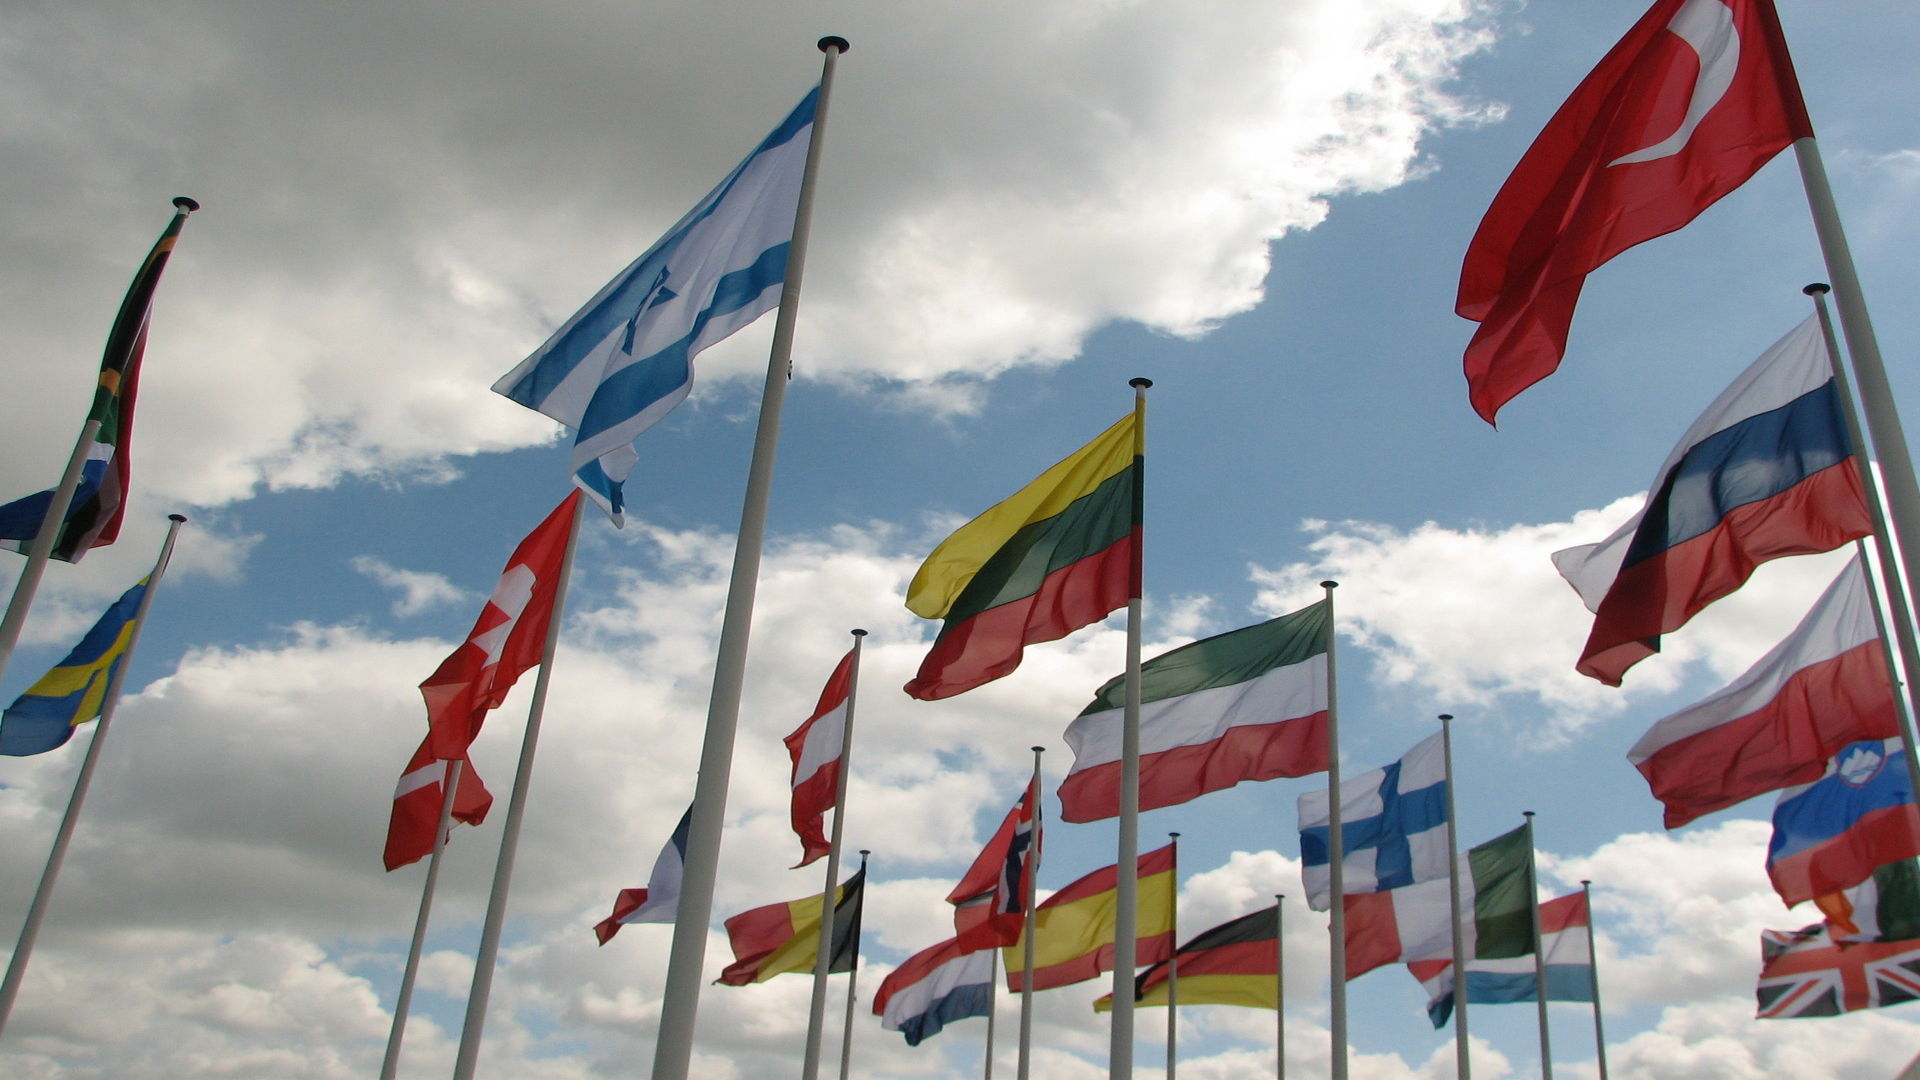 Flags around the world. Photo credit: Tibor Fazakas on Free Images.